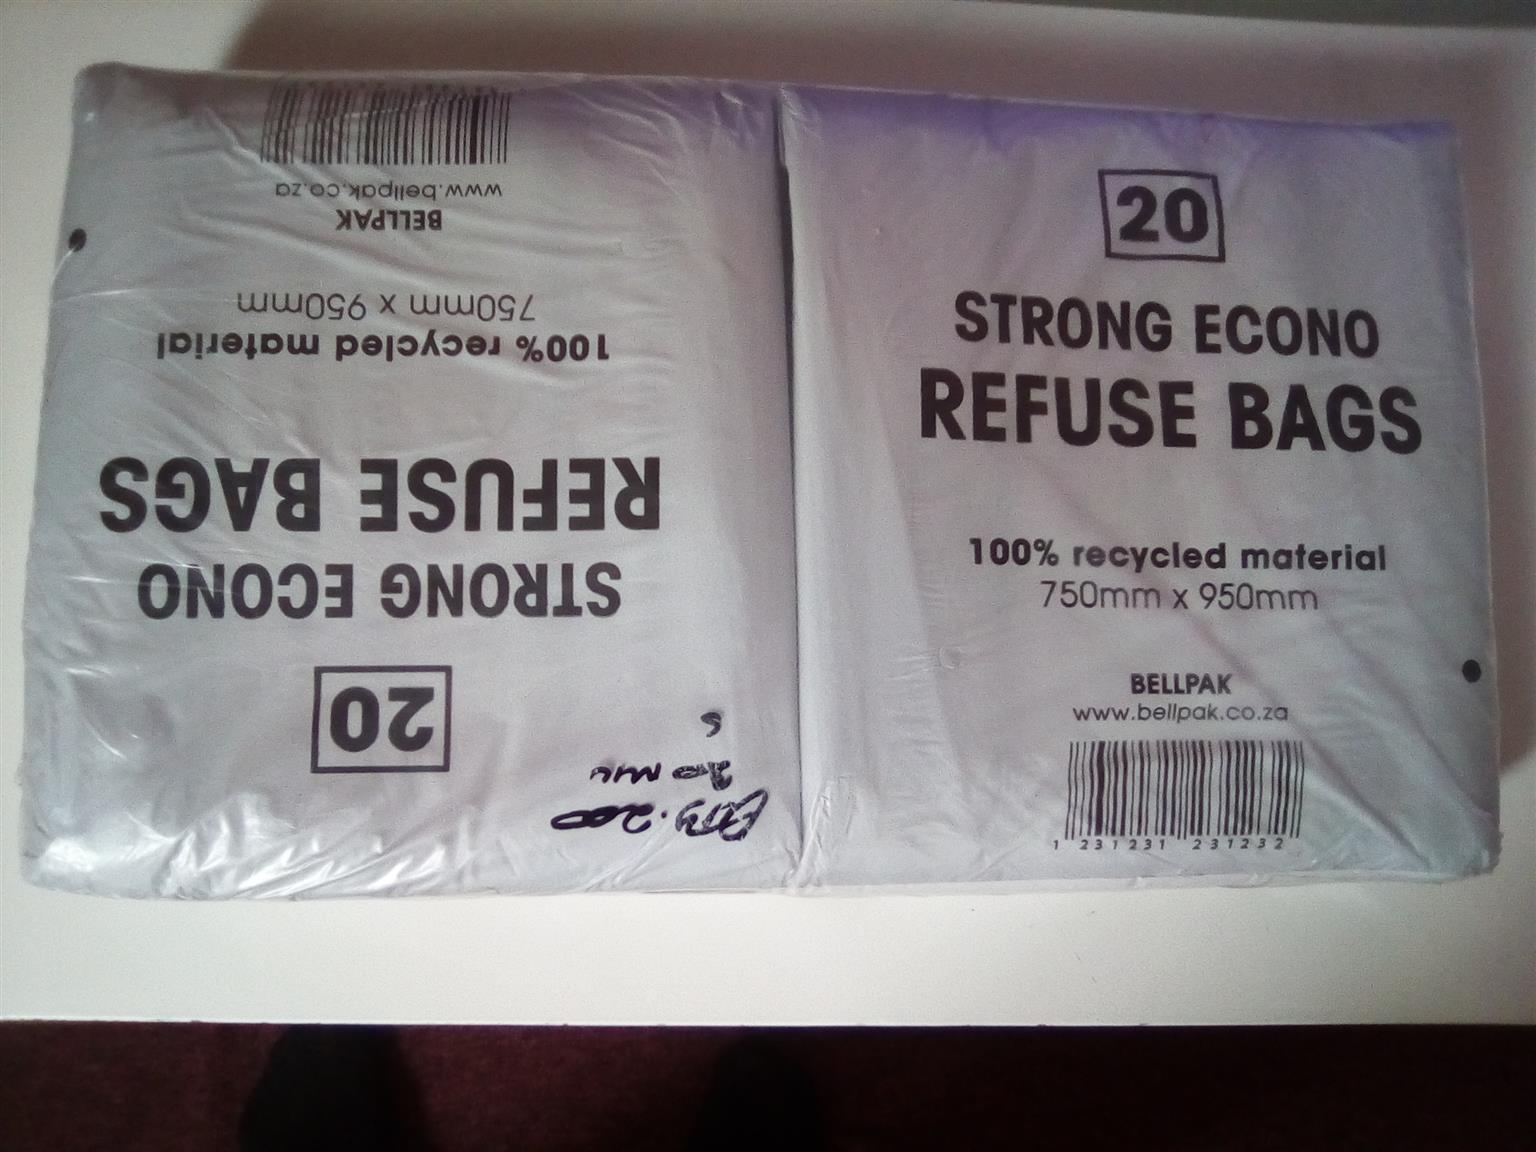 Black refuse bags and Packaging plastics